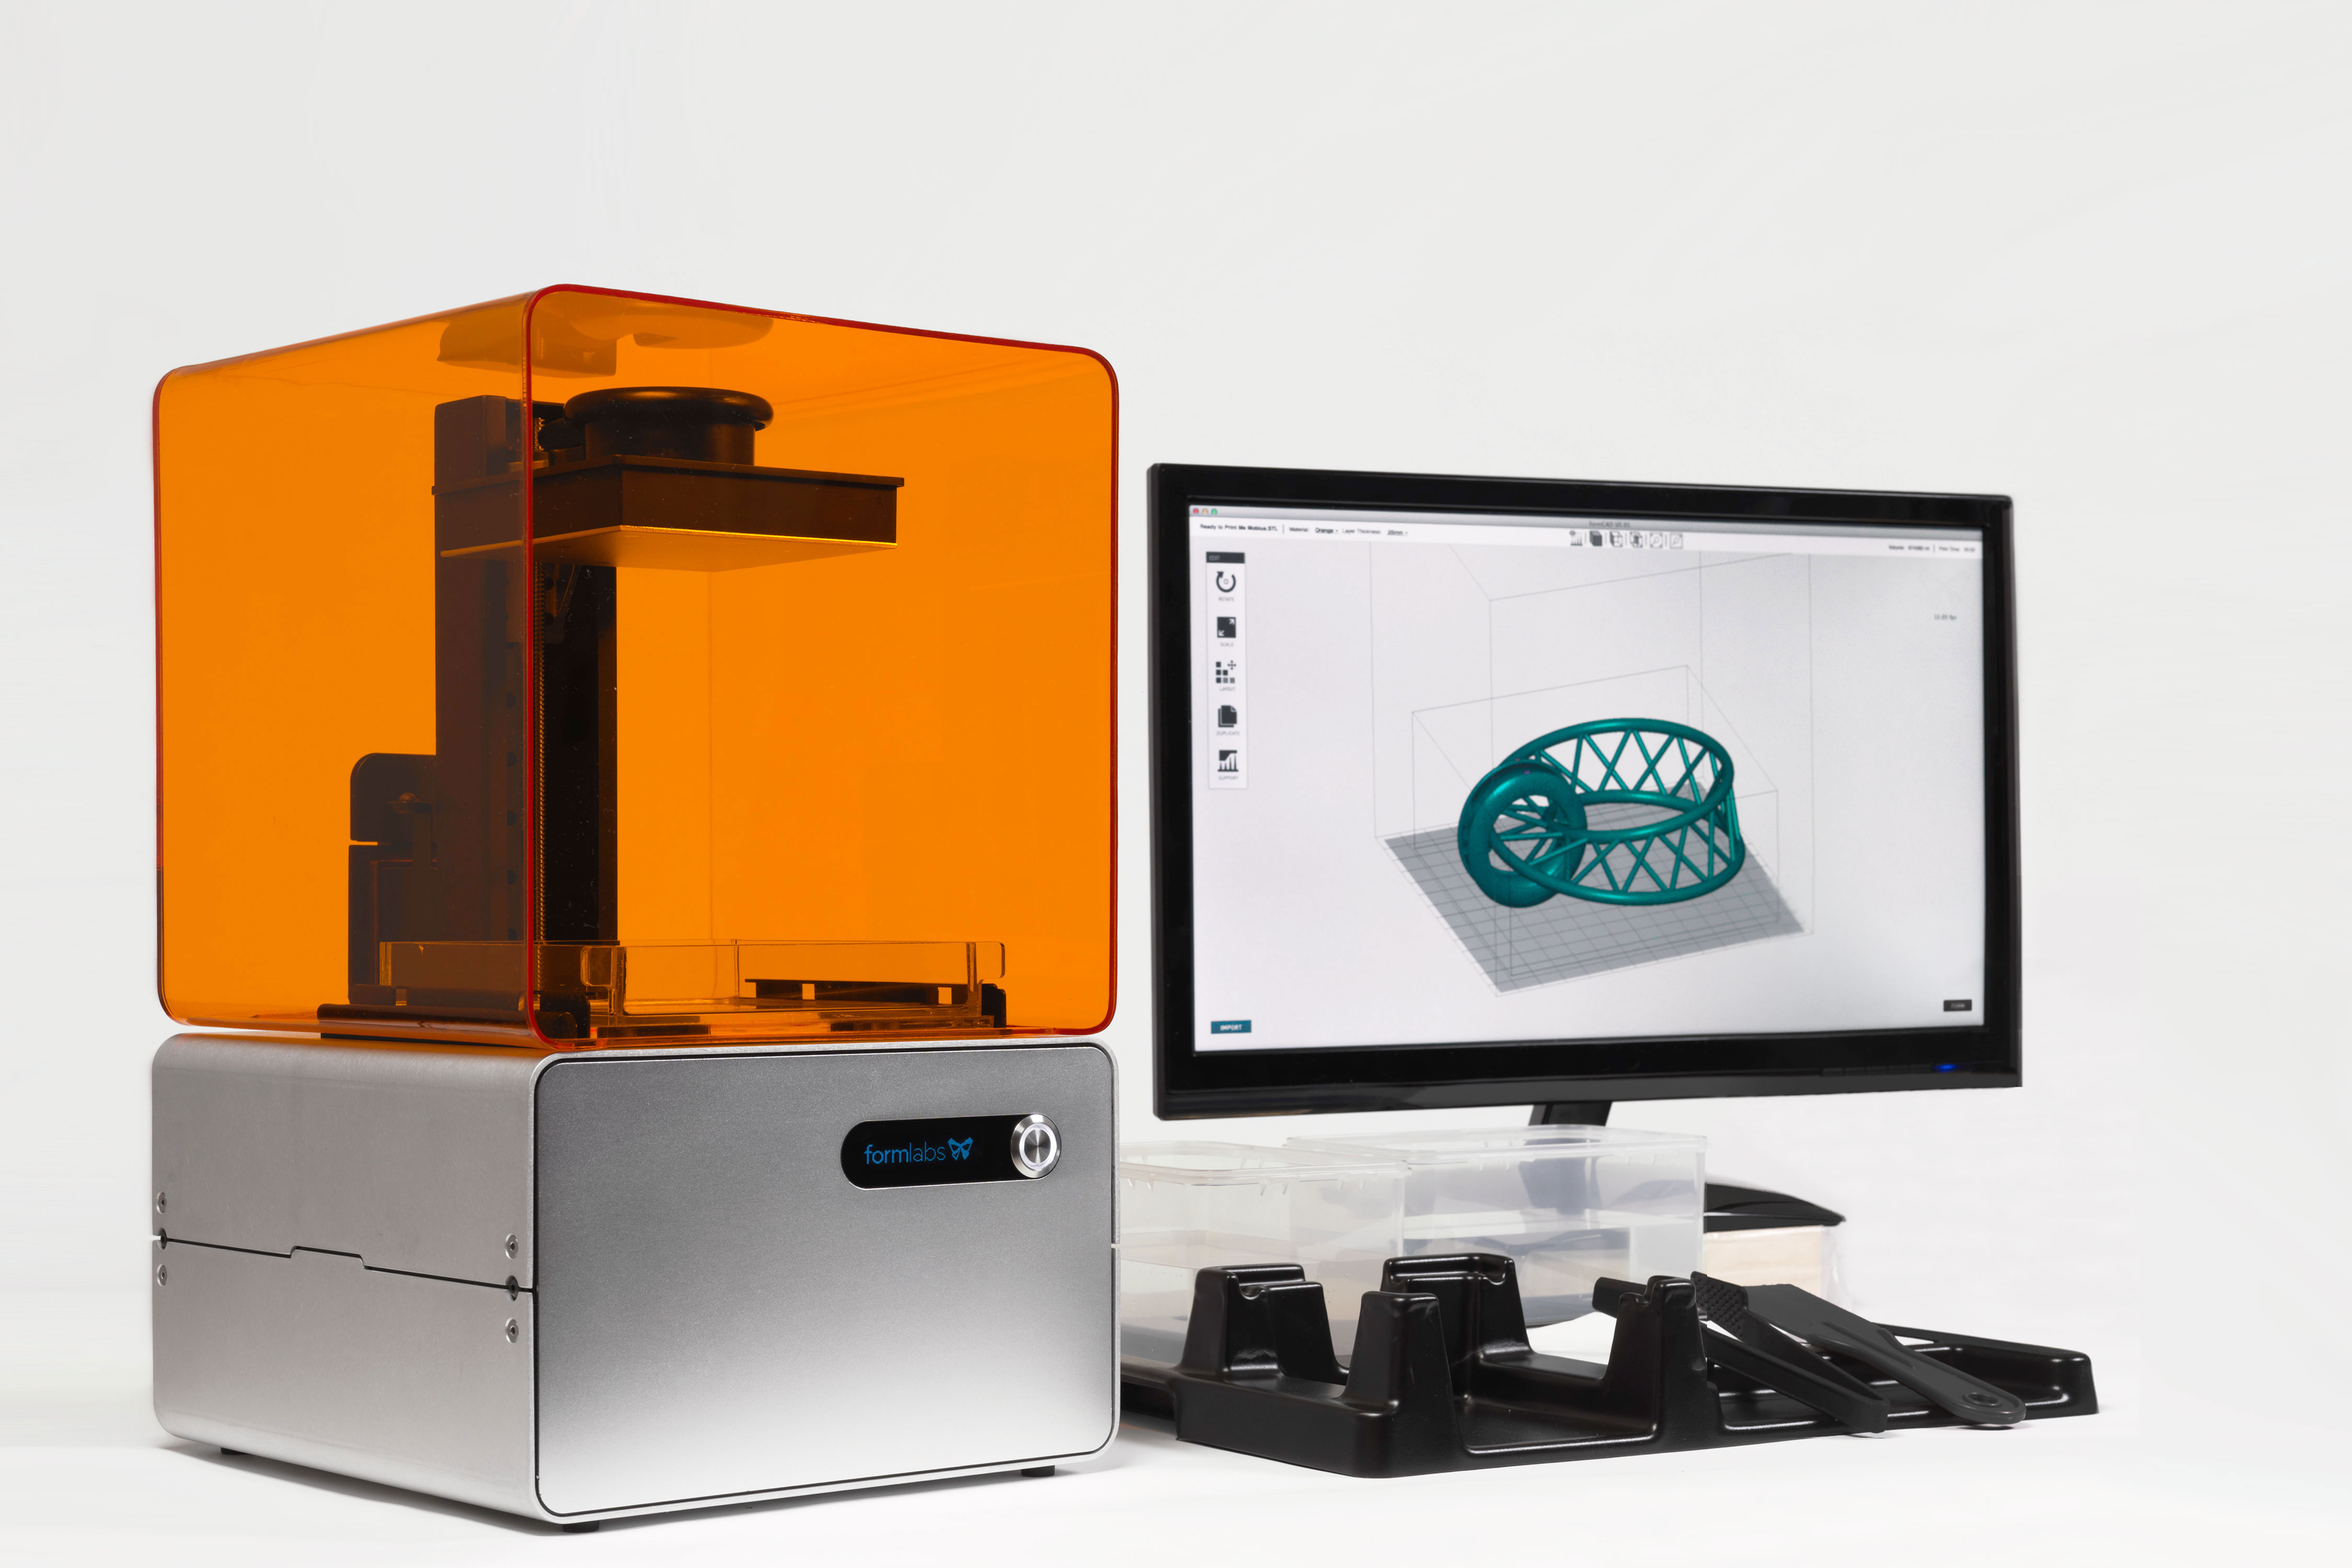 Billed as the first truly high-resolution, low-cost 3D printer for ...